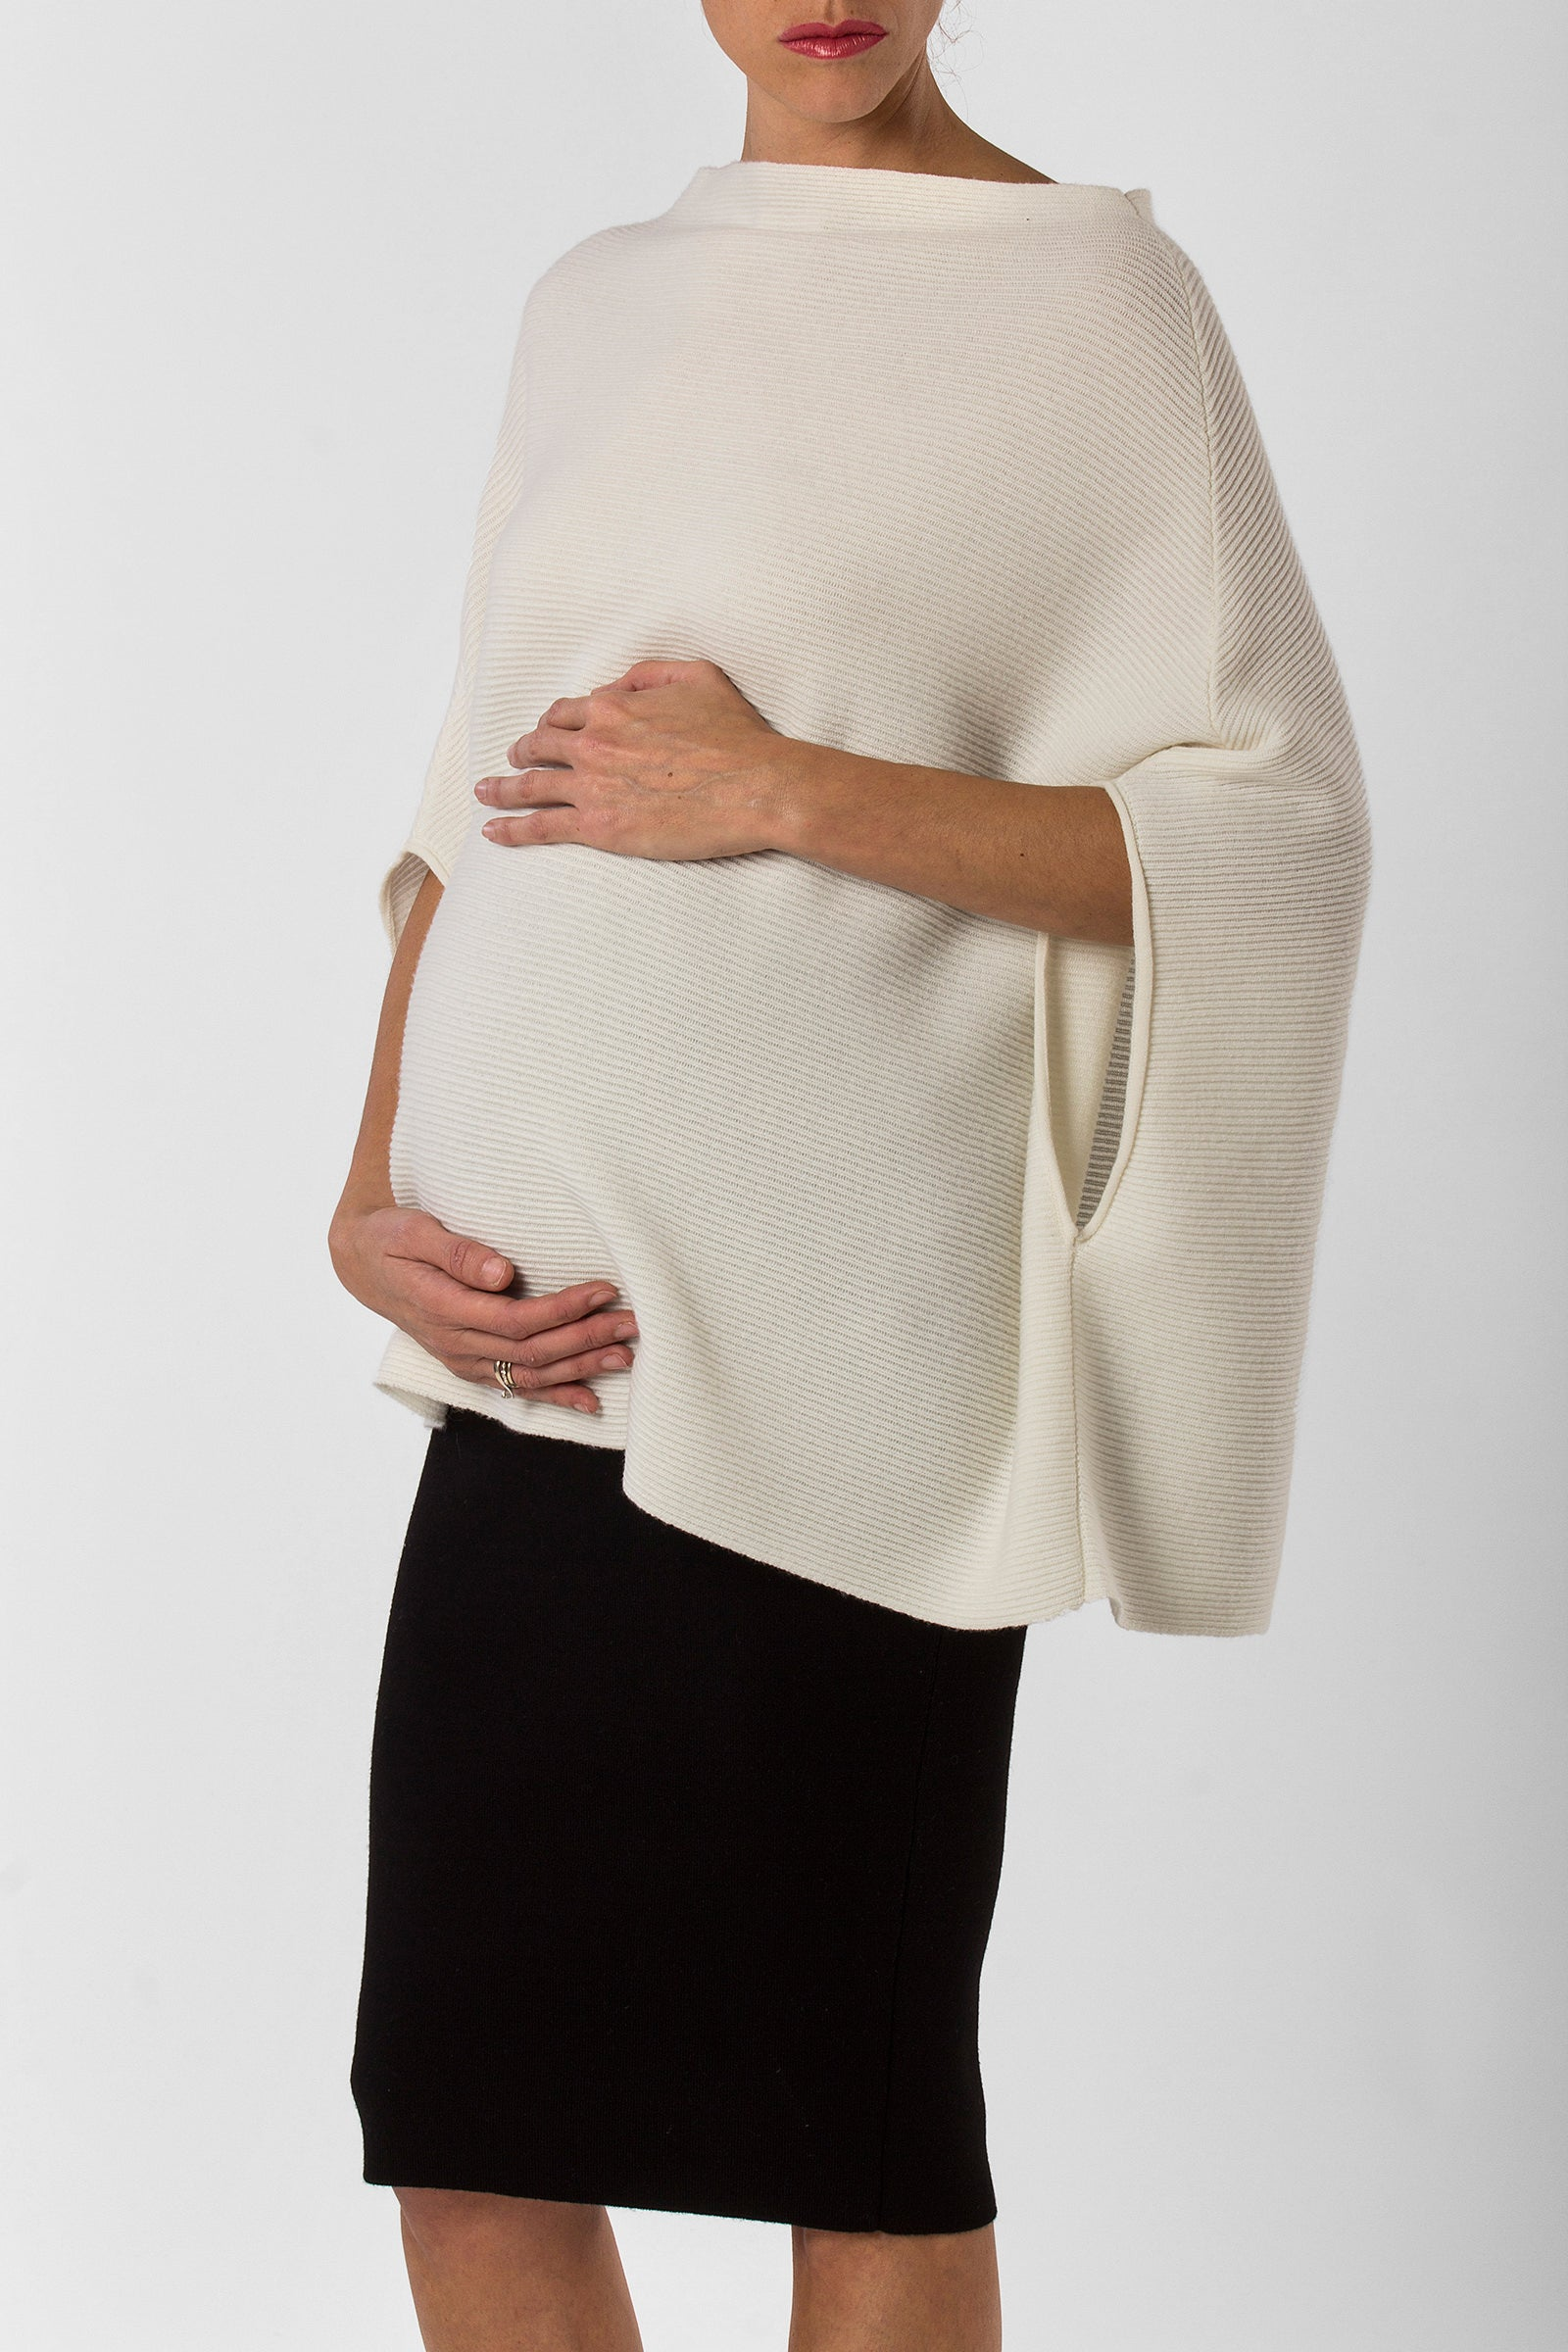 rachele nursing poncho - front - winter white